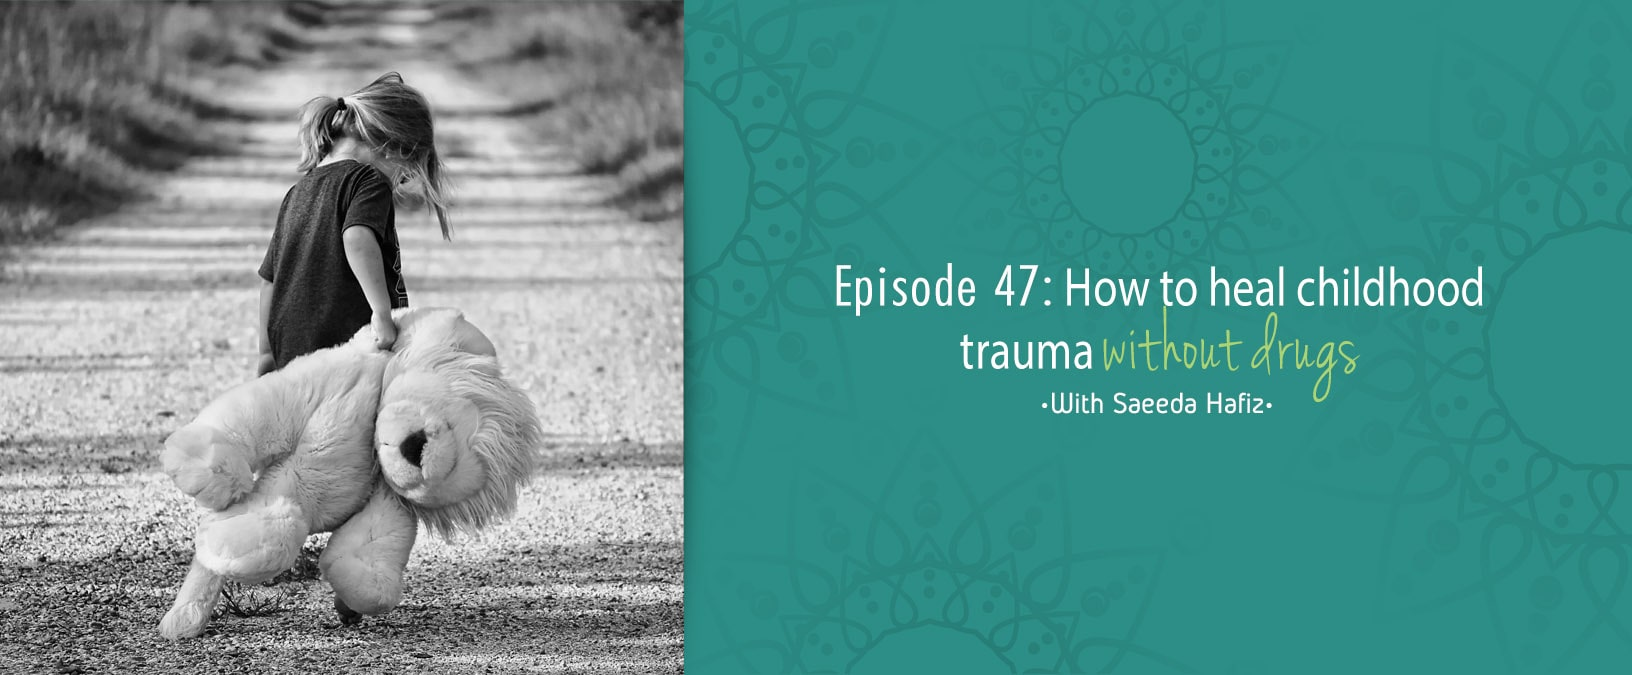 How to heal childhood trauma without drugs